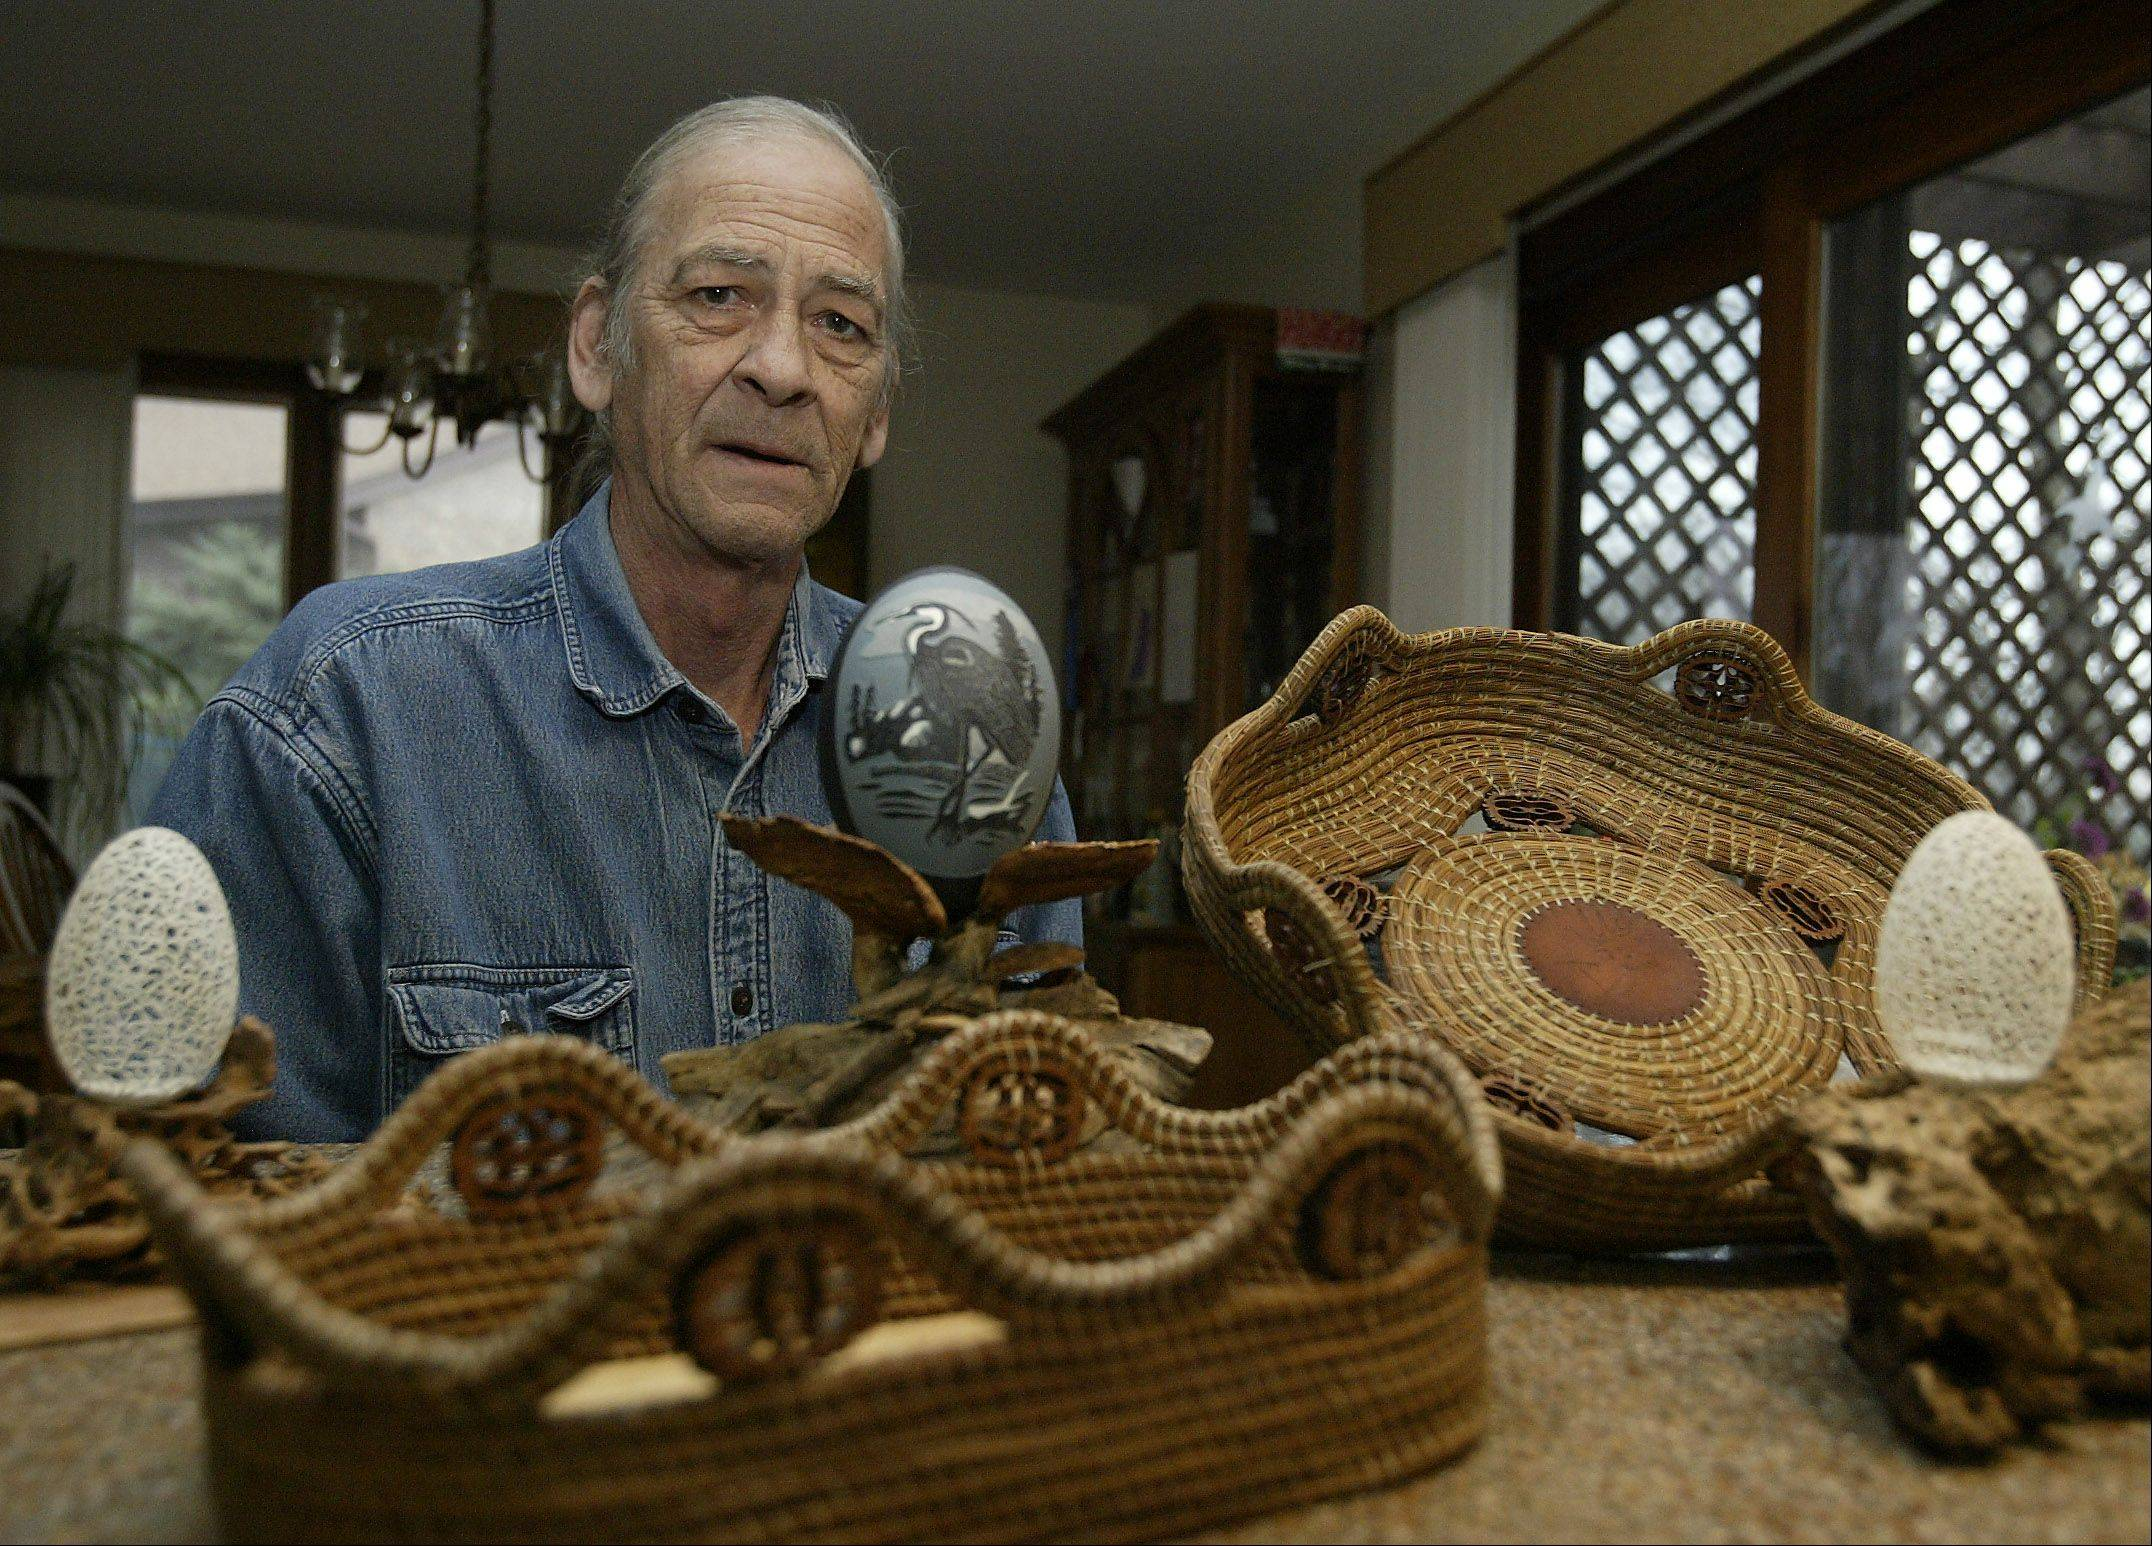 John Warnock of Gilberts has had a lifetime of art projects. From pastels and chalk drawings to woodcarving and lathe work he has settled on pine needle baskets and carving eggshells as his latest craft. Warnock will display his work at the Christmas on the Fox Art and Craft Show this weekend.